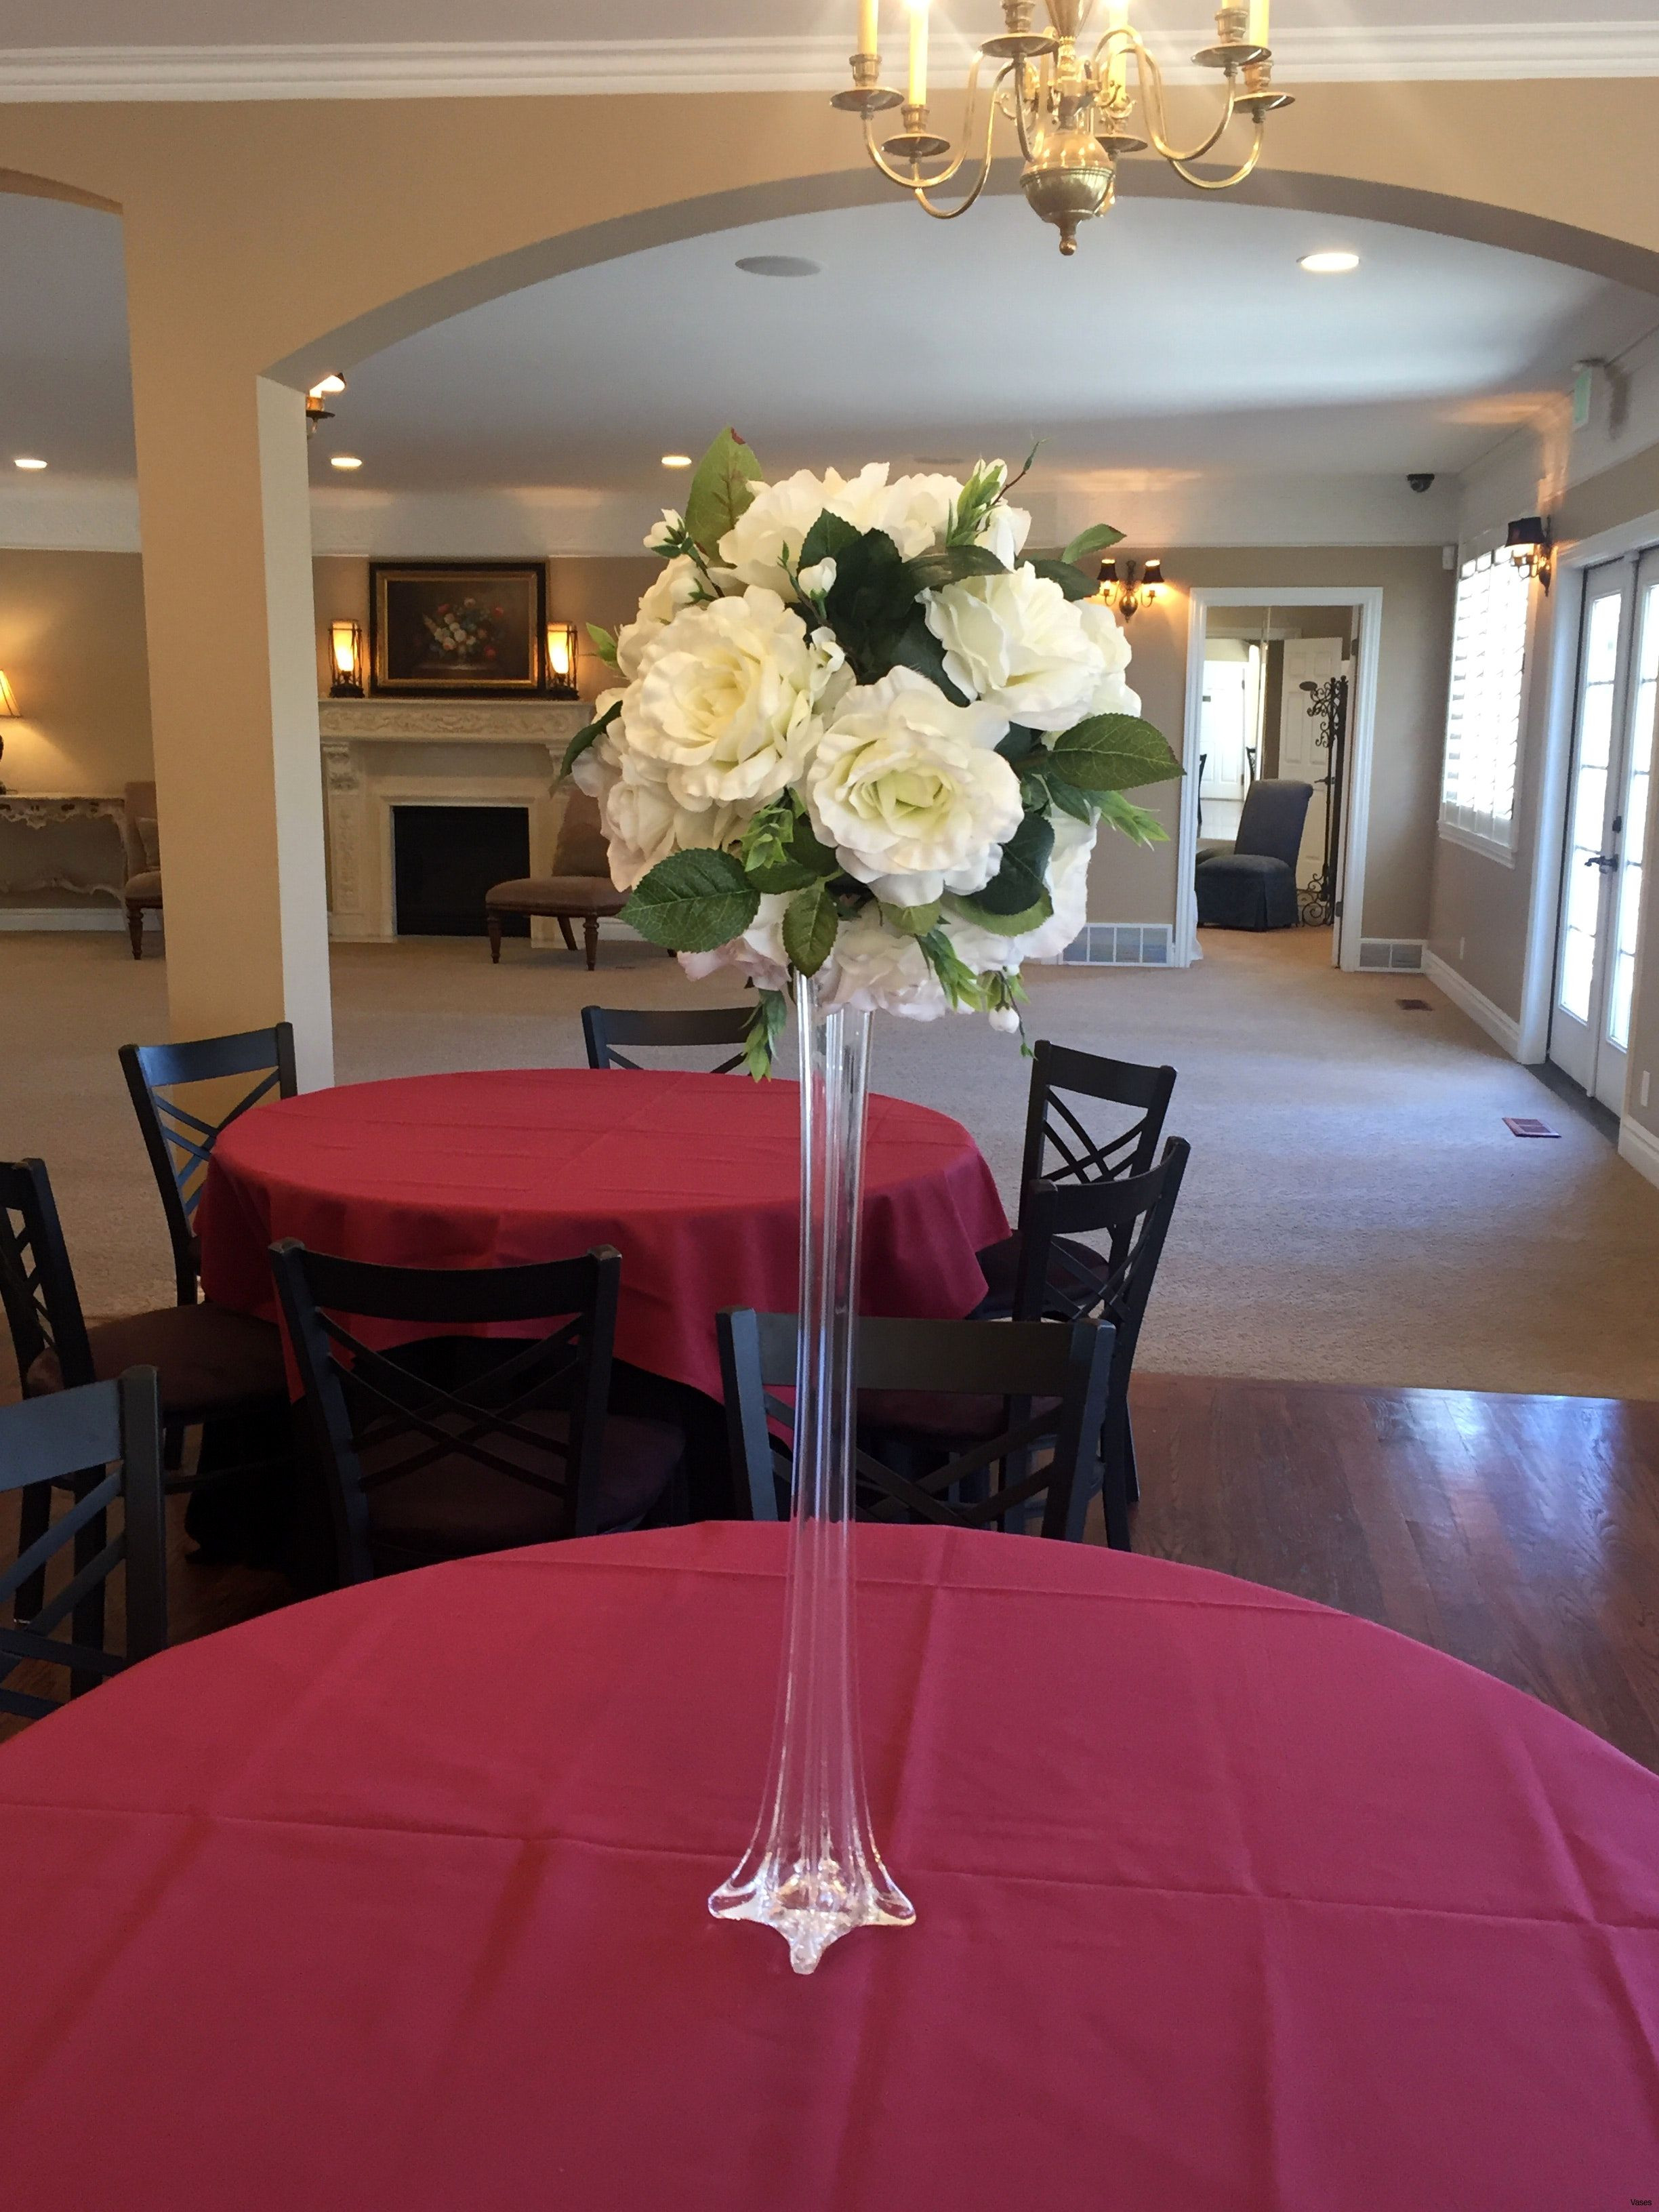 big flower vase online of 24 tall vases for sale the weekly world with regard to lovely wedding decoration rental